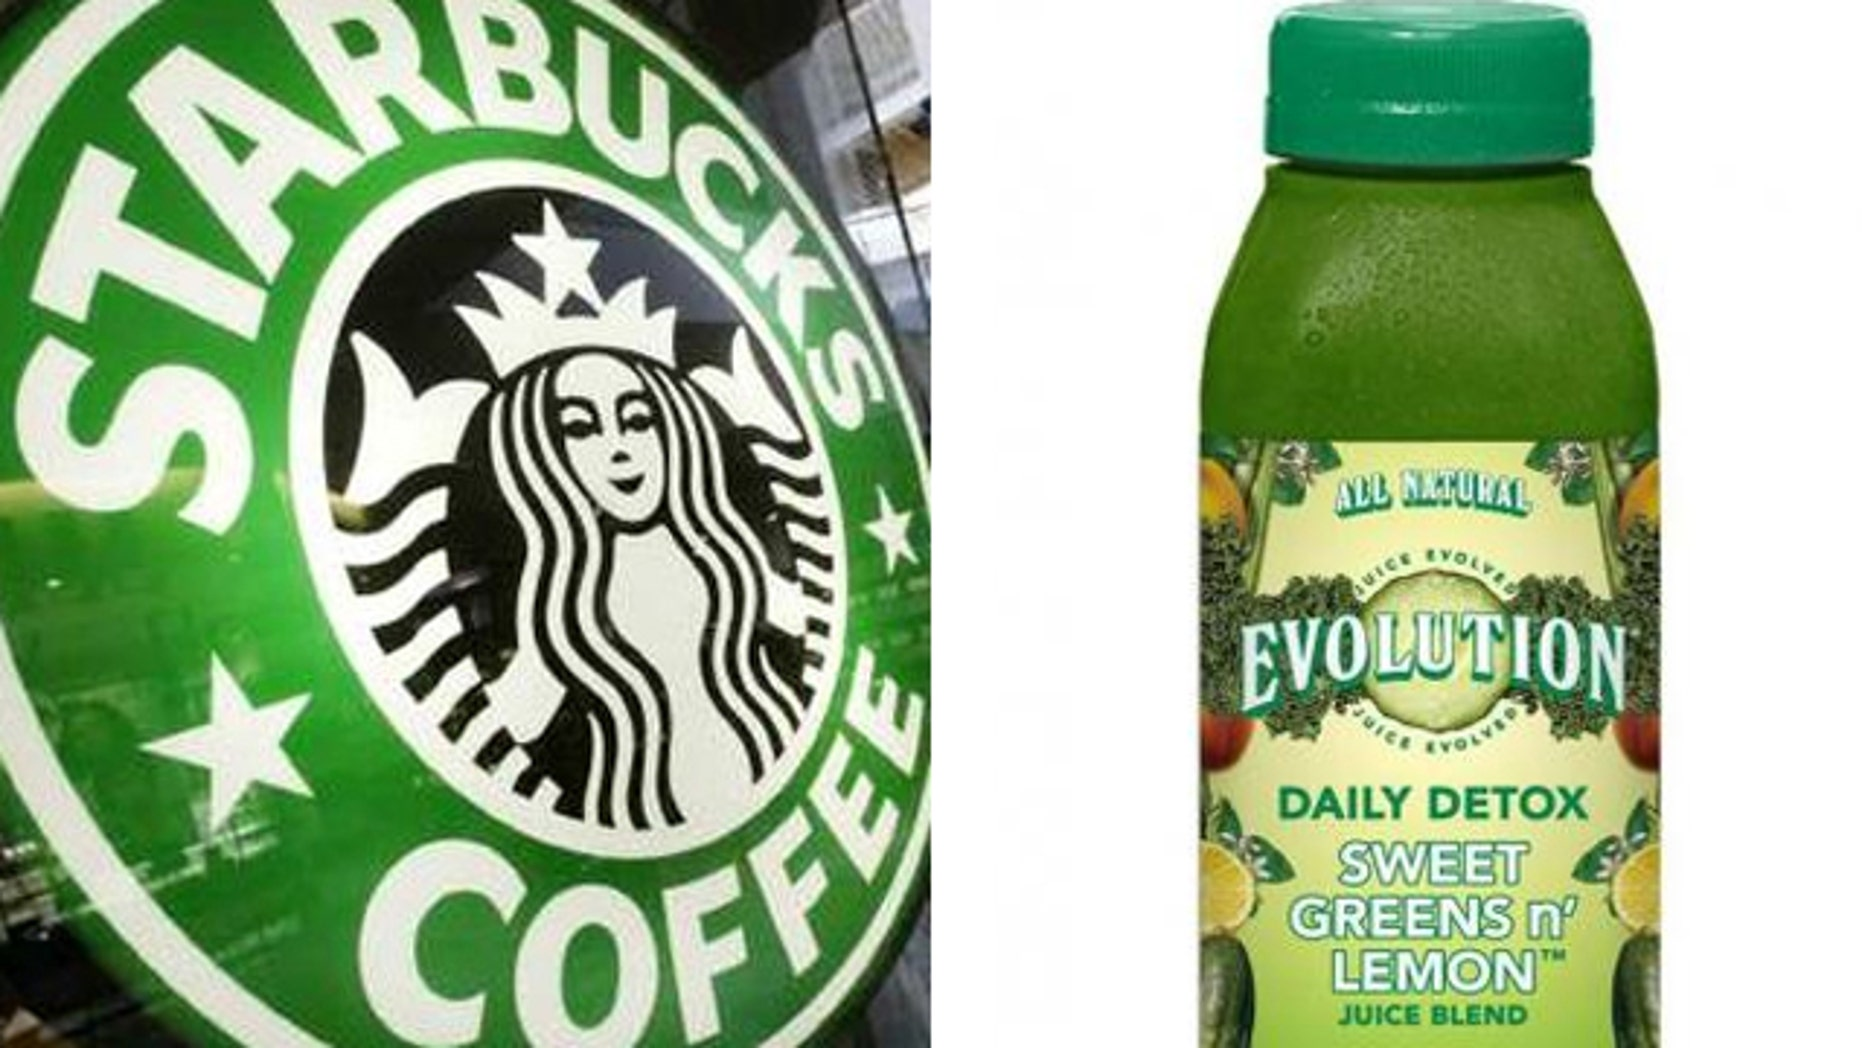 Starbucks Corp. is opening of the first Evolution Fresh Inc. juice store.